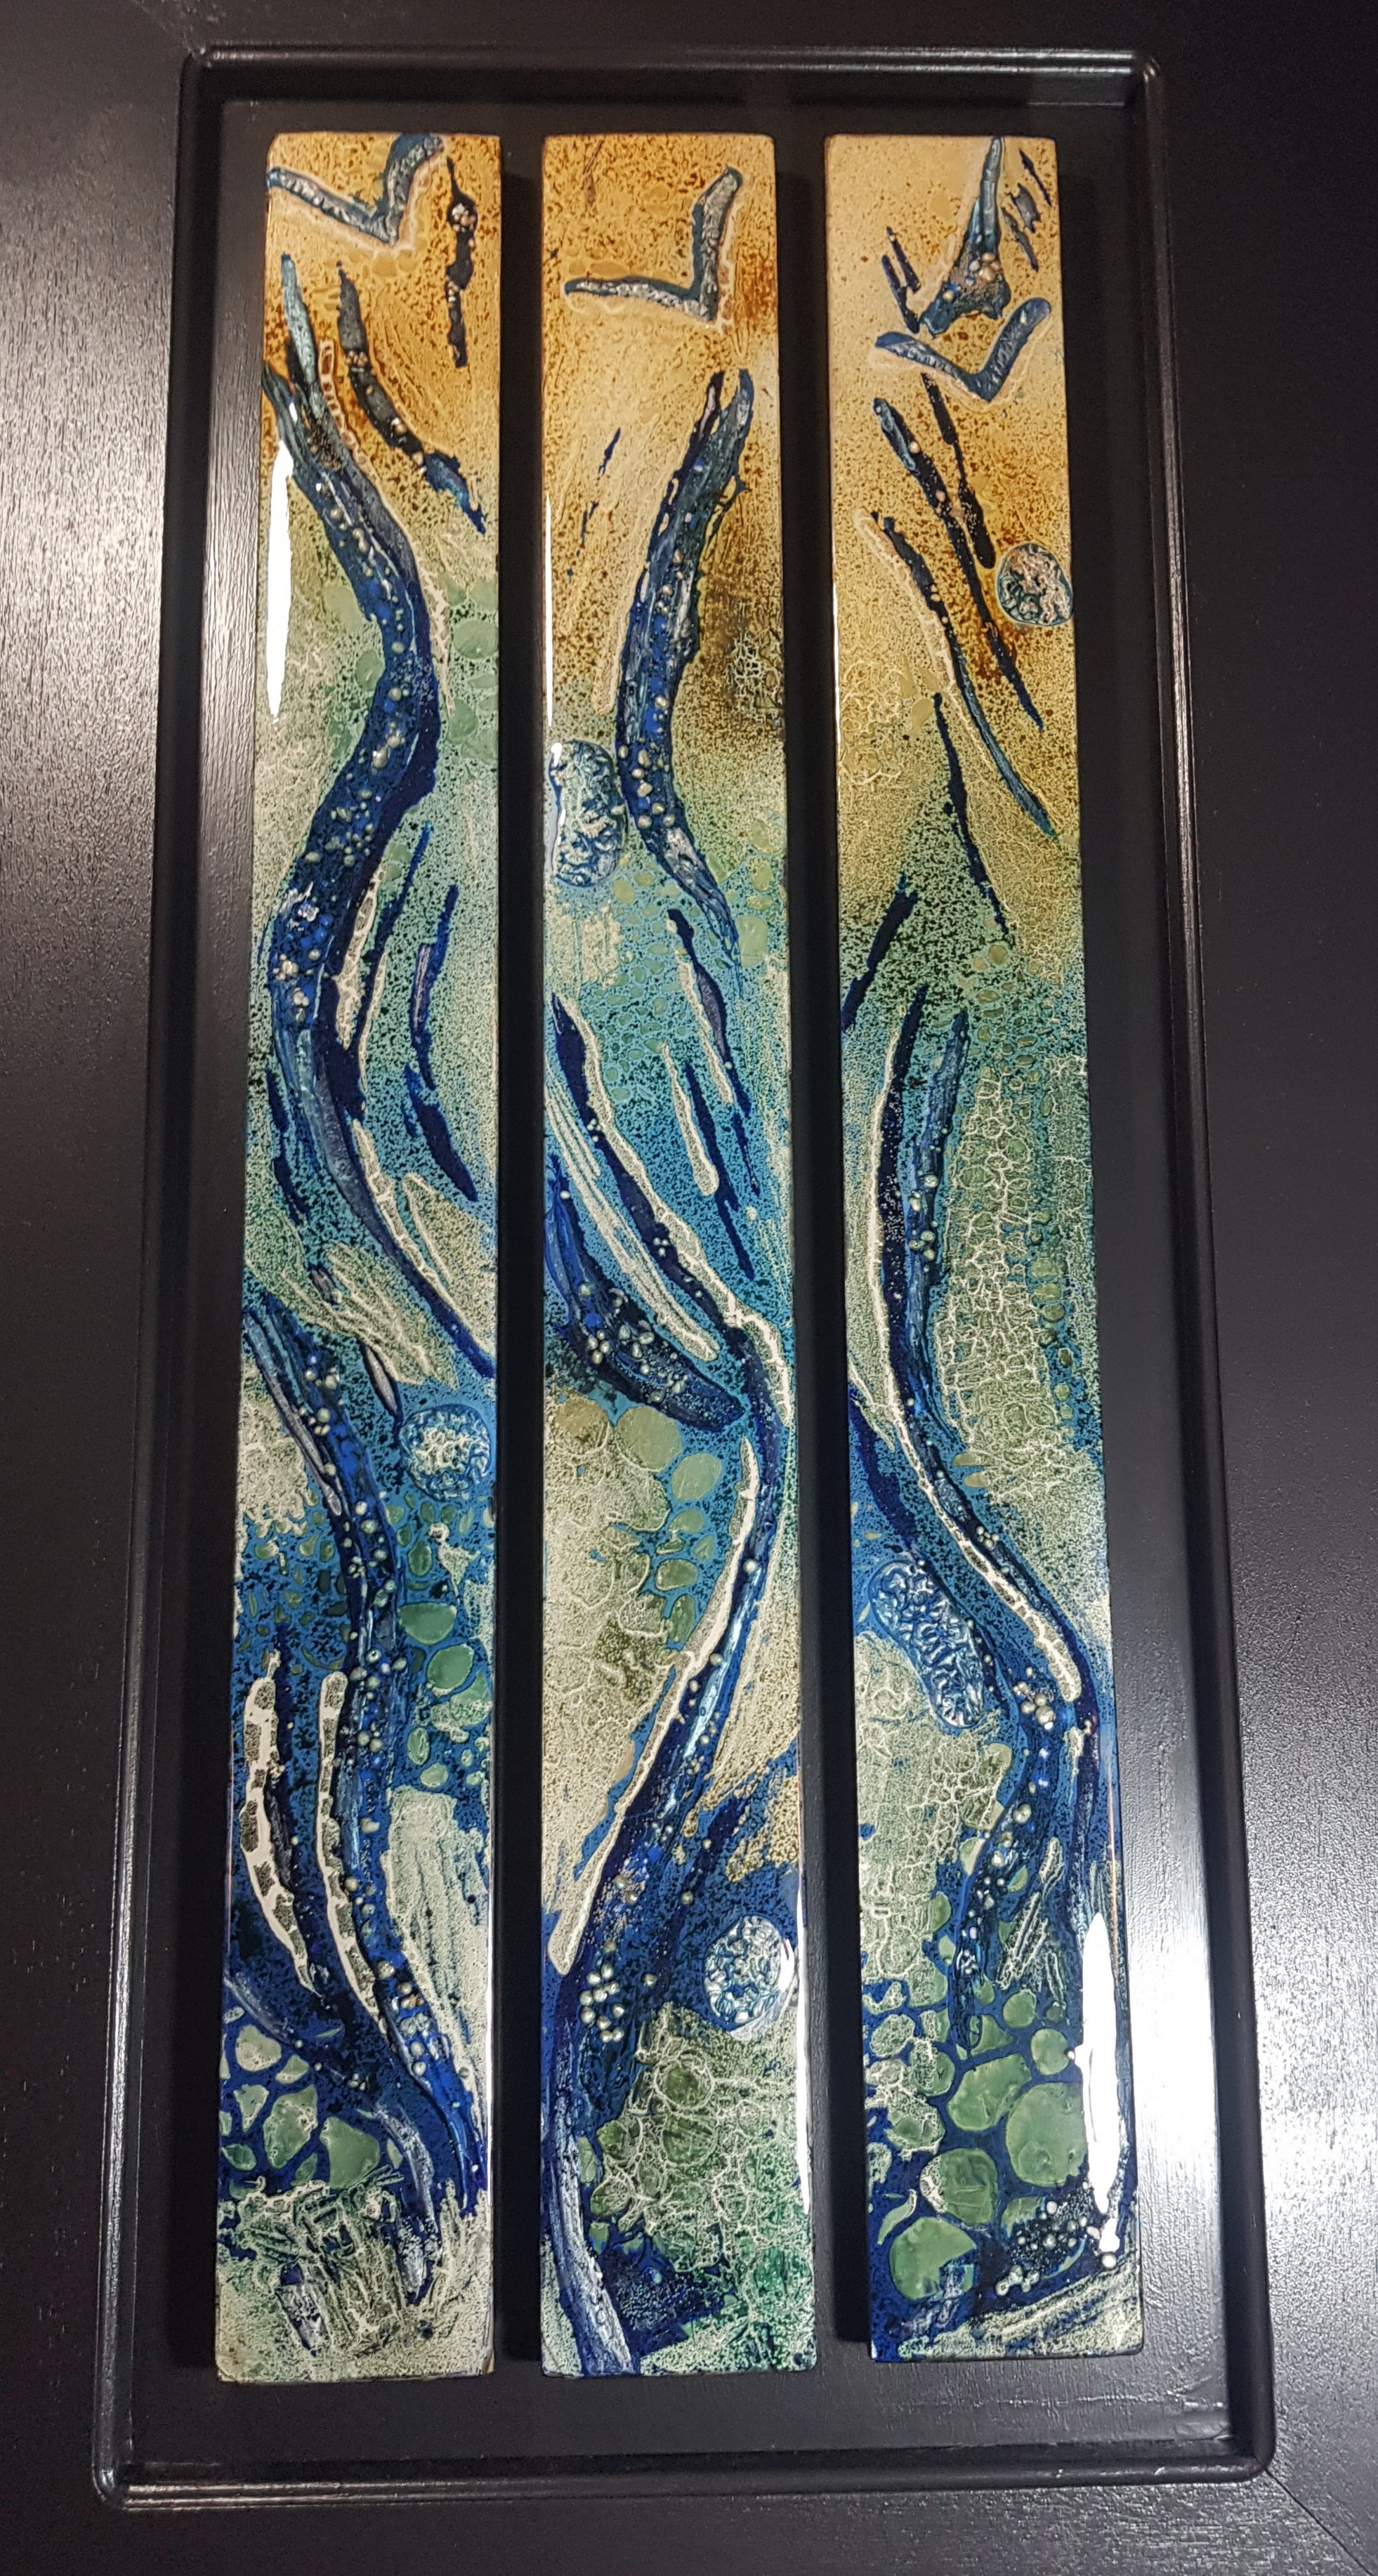 """Triptych Workshop using Powertex:31 August 2019 - Workshop: 9.30am to 4.30pm - Full Day Workshop: $165Come and enjoy a full day of Powertex products to make this beautiful piece. You will get to create this artwork on 3 separate pieces of wood.If you love to play with paint and mixed media, then this is for you.While at the workshop you will learn Painting Techniques with Powertex, get to use Bister & Easy3DFlex.This is a great class for Beginners and those more experienced will enjoy it just as much.All tuition, materials and tools provided.Bring your own lunch and snacks; biscuits and refreshments are available.Remember to wear clothing you do not mind getting dirty or bring your own apron.Click on """"Link to Bookings Page"""" , spaces are limited, or email me if you wish to do a Bank Transfer"""